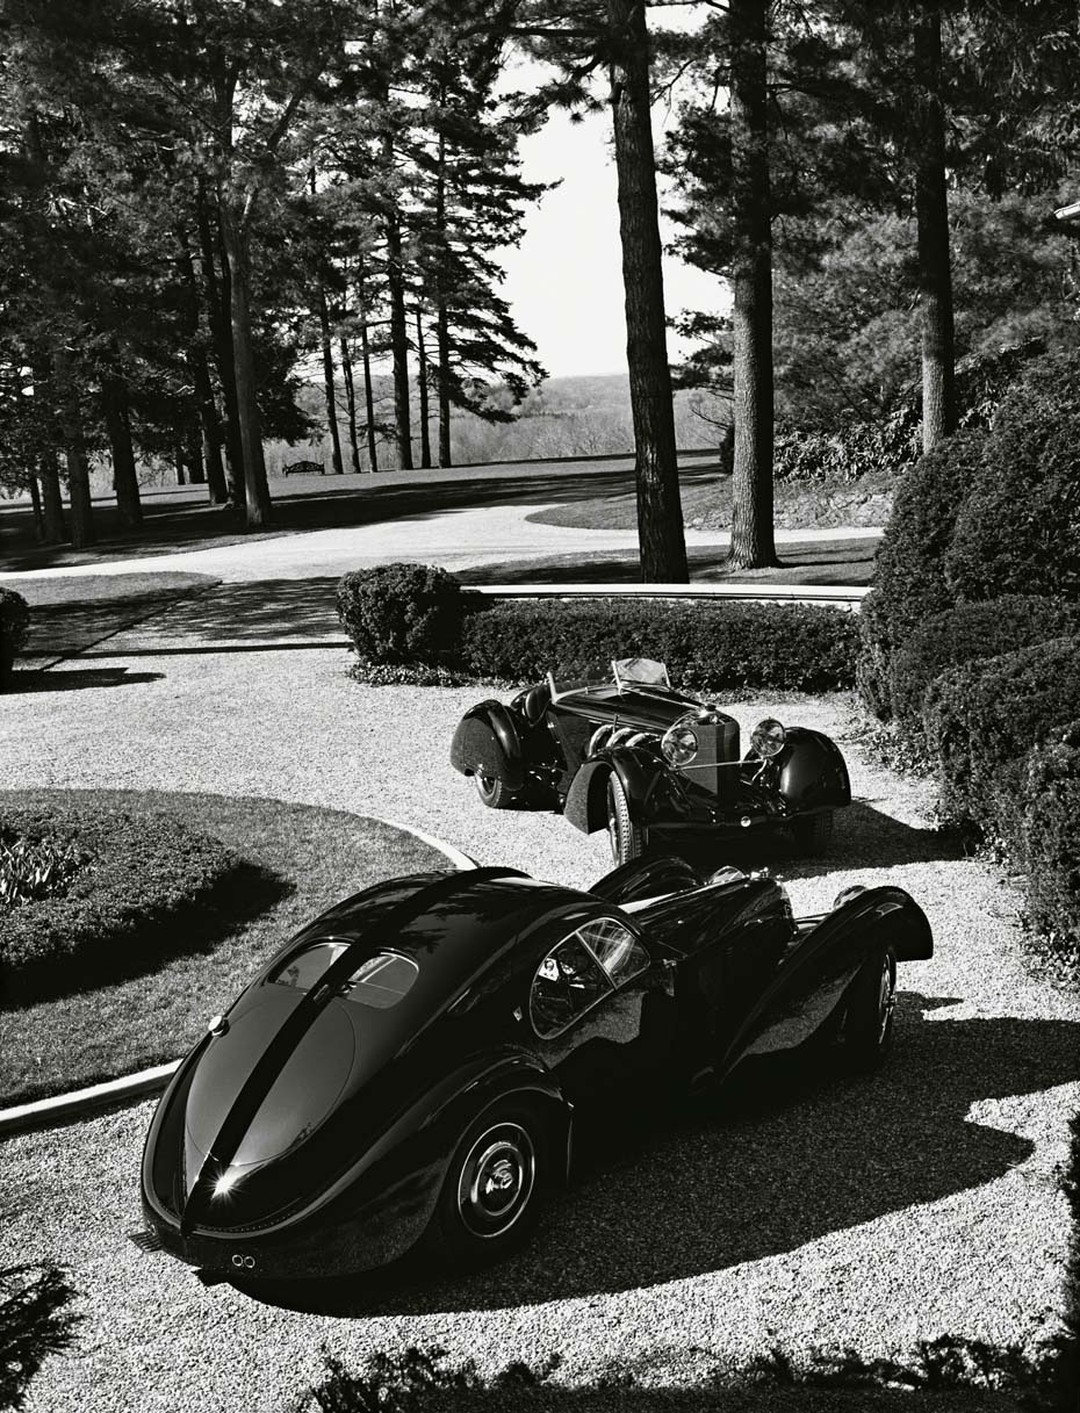 The black Bugatti 57CS Atlantic Coupé, built in 1938, just a year before the designer's birth, is an amazing creature with curves reminiscent of a Hollywood pin-up.